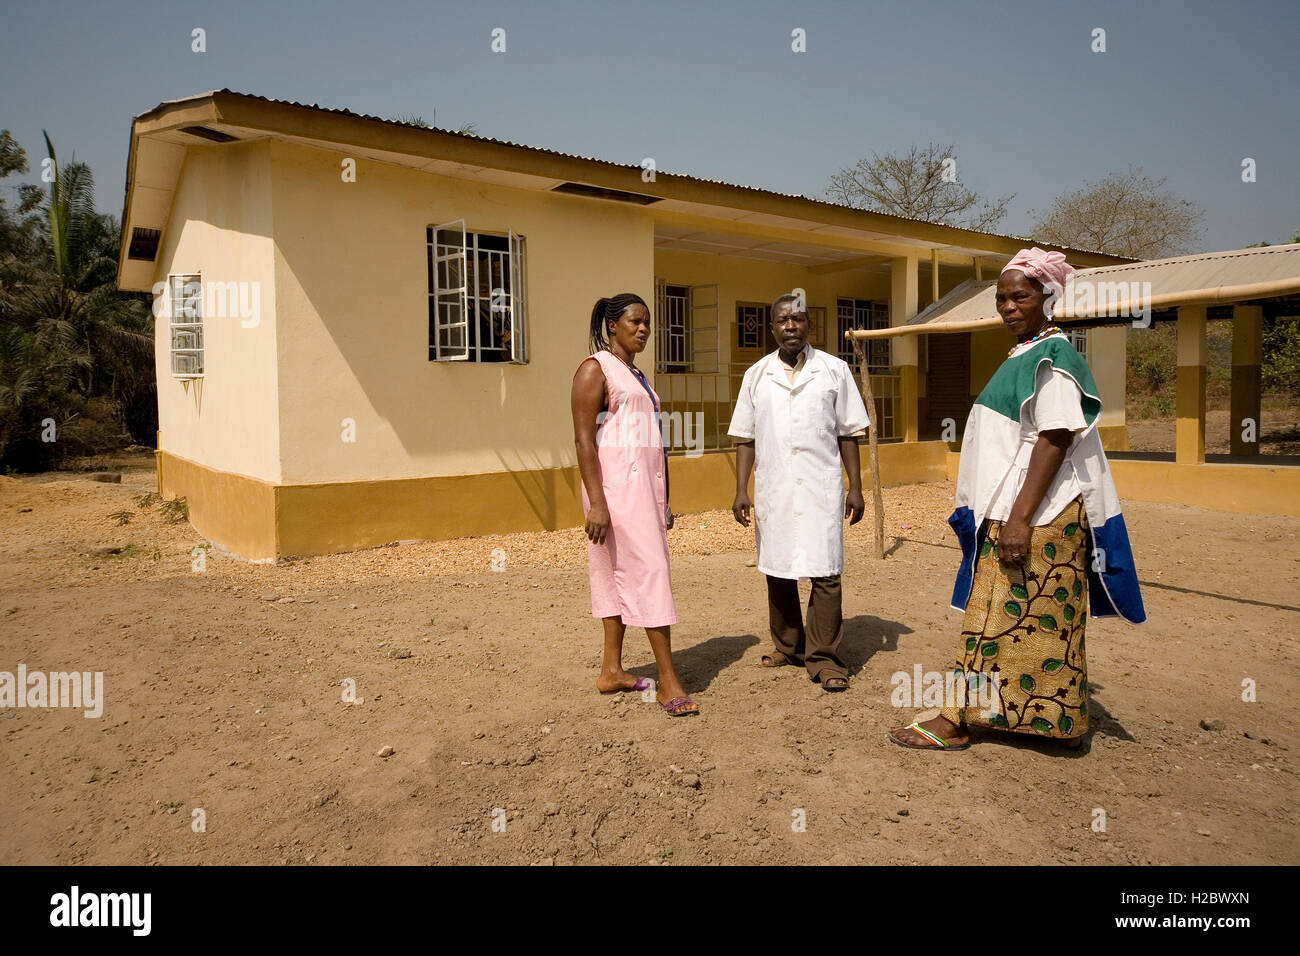 Medical staff outside health clinic one of several village community projects supported by iron ore company in Tonkolili - Stock Image